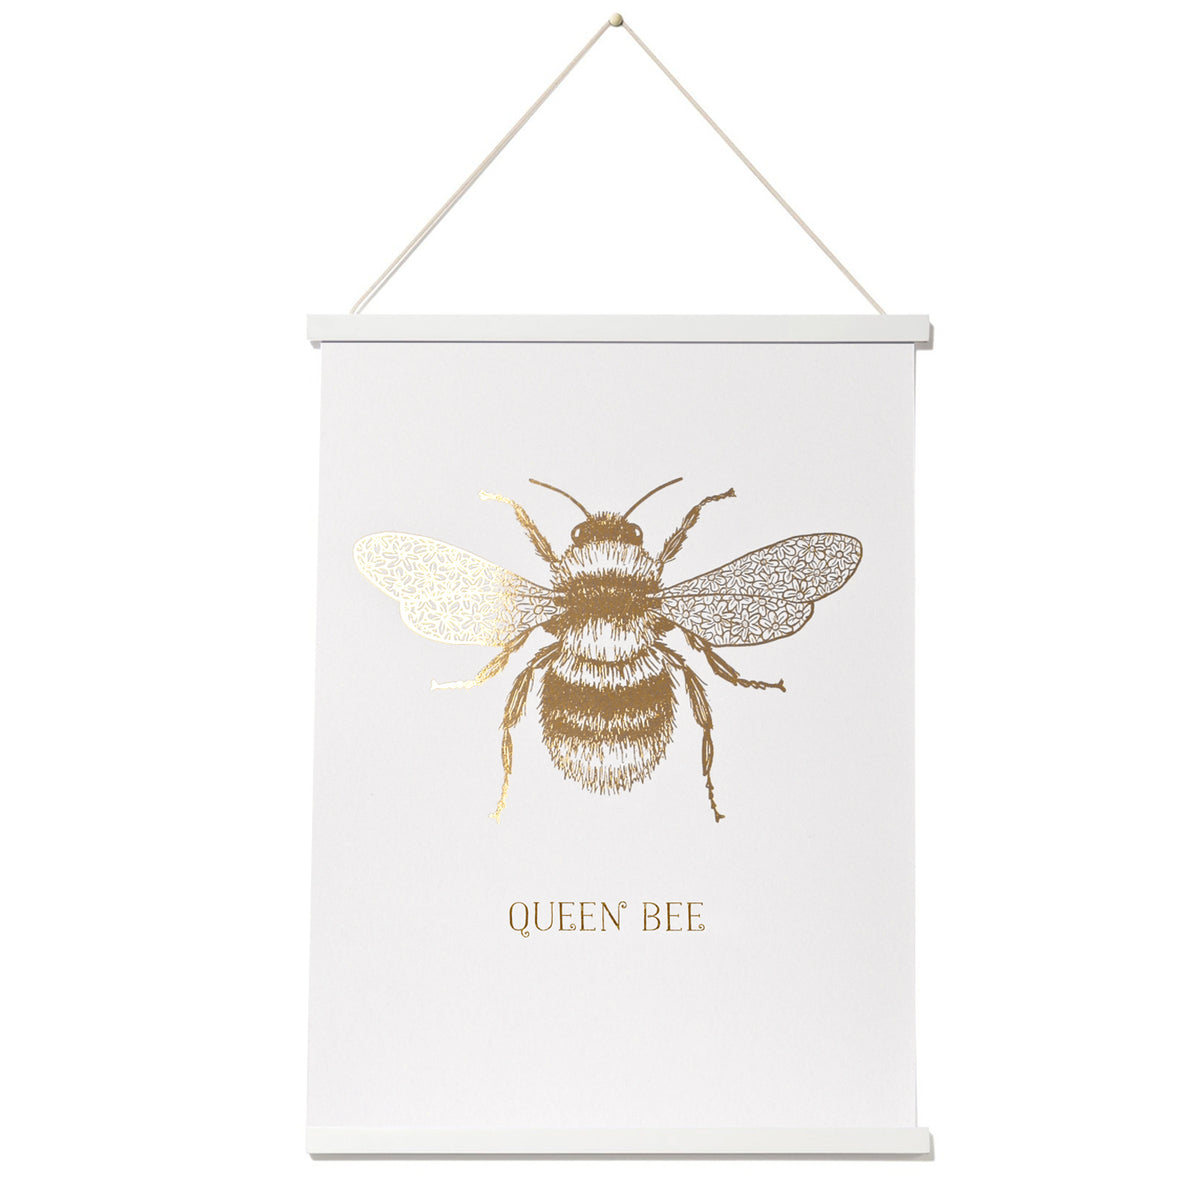 Queen Bee Gold or Copper Print - a Unique gift and original gift from Auntie Mims ideal for Christmas